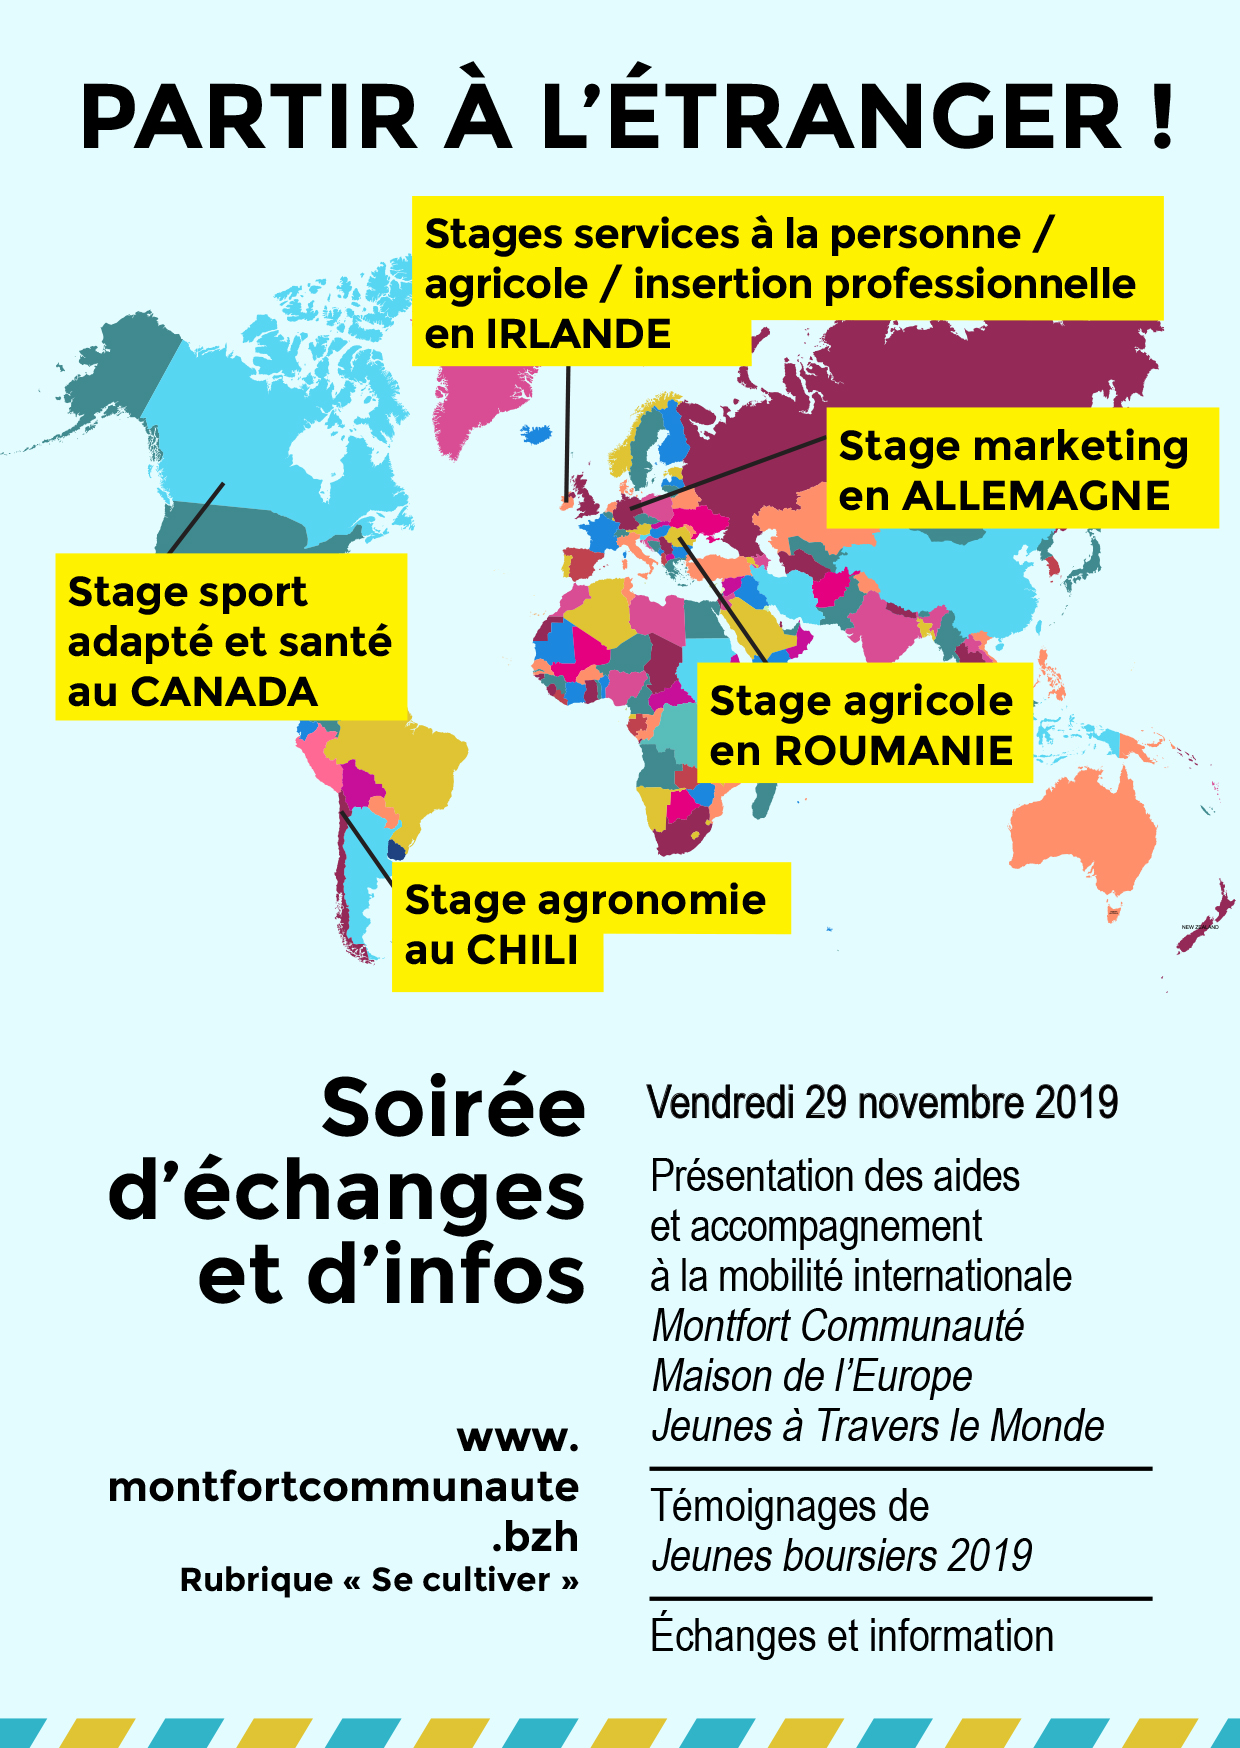 2019 Flyer Soiree Partiraletranger 2